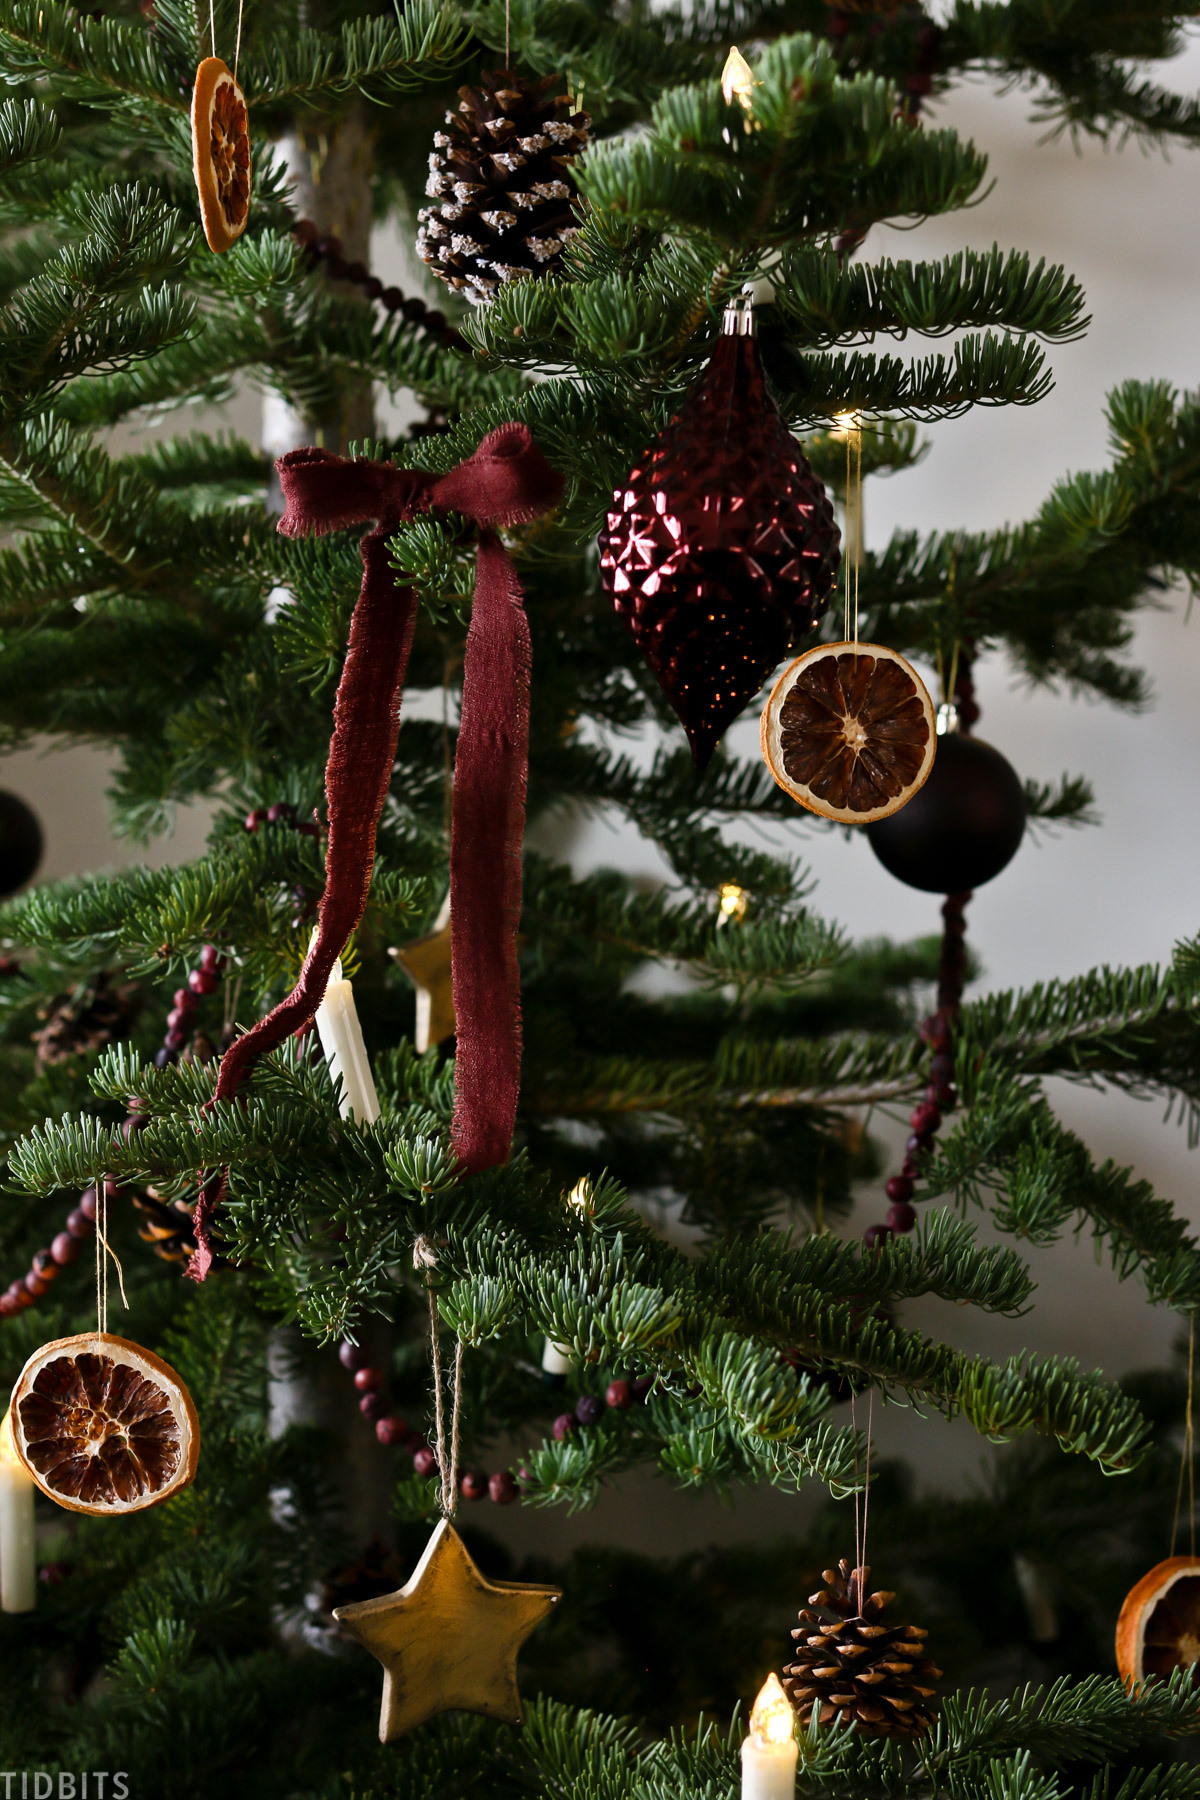 orange garlands, red ribbon and ornaments hanging from European Old World style Christmas tree